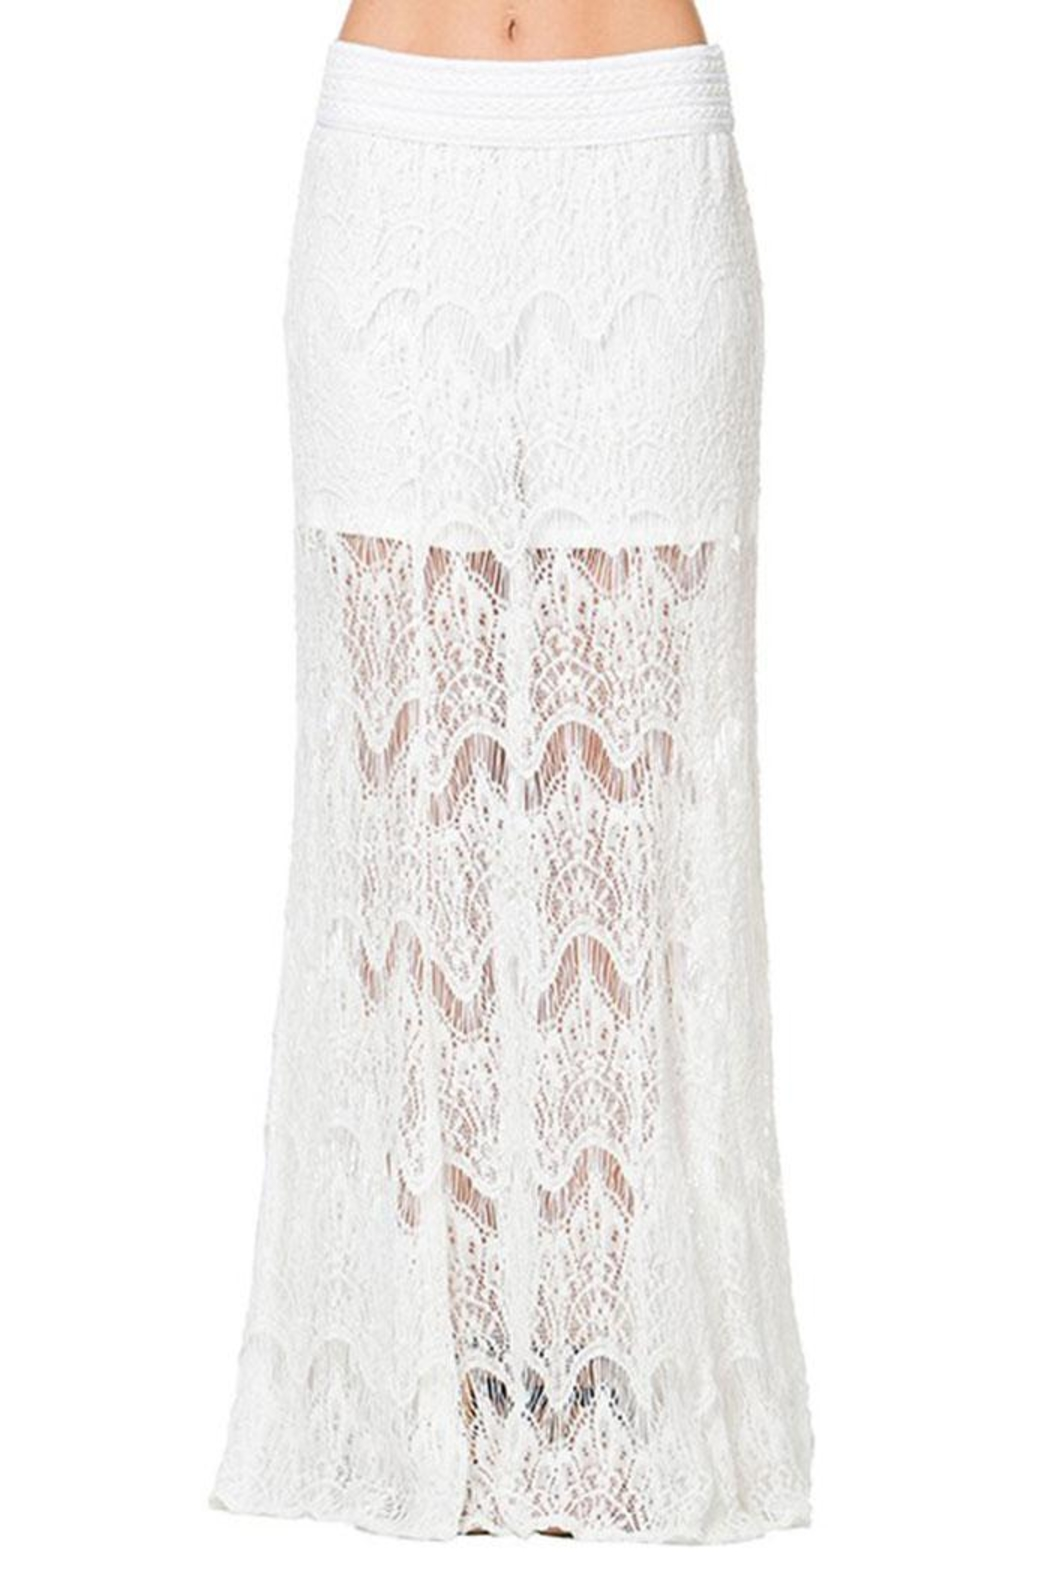 Mur Mur Lace Maxi Skirt - Front Cropped Image